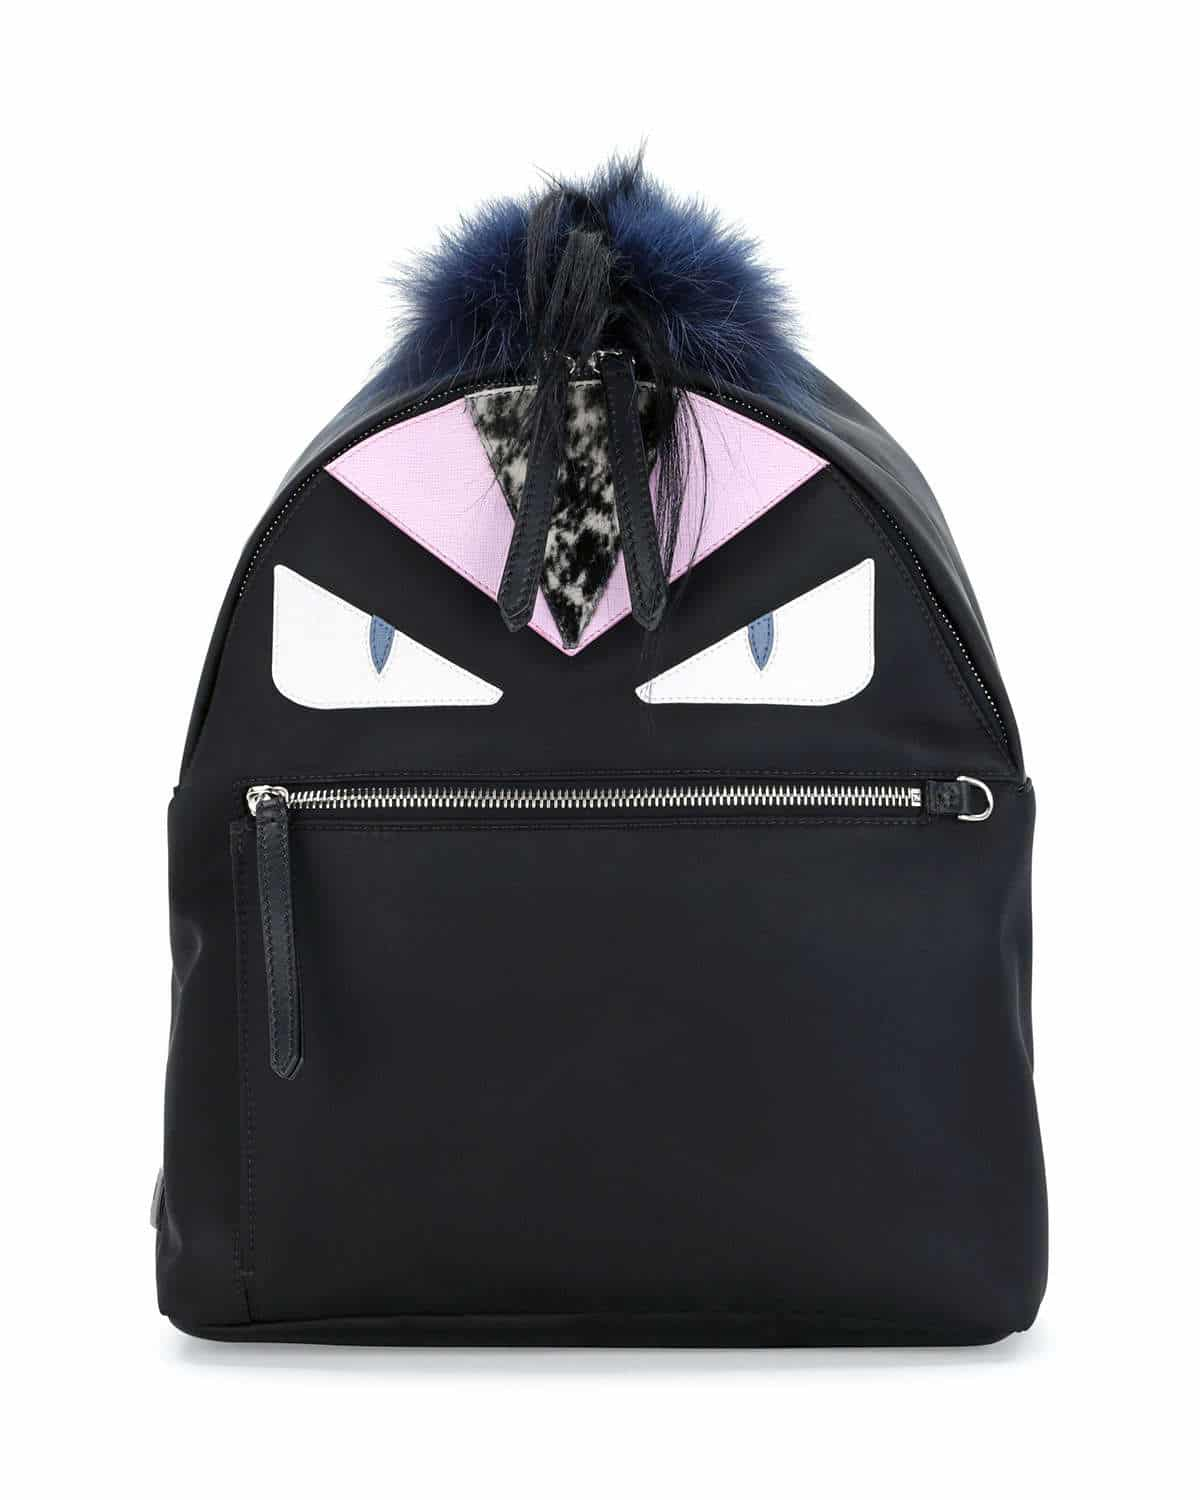 Fendi Monster Bag Collection For Pre Fall 2015 Available